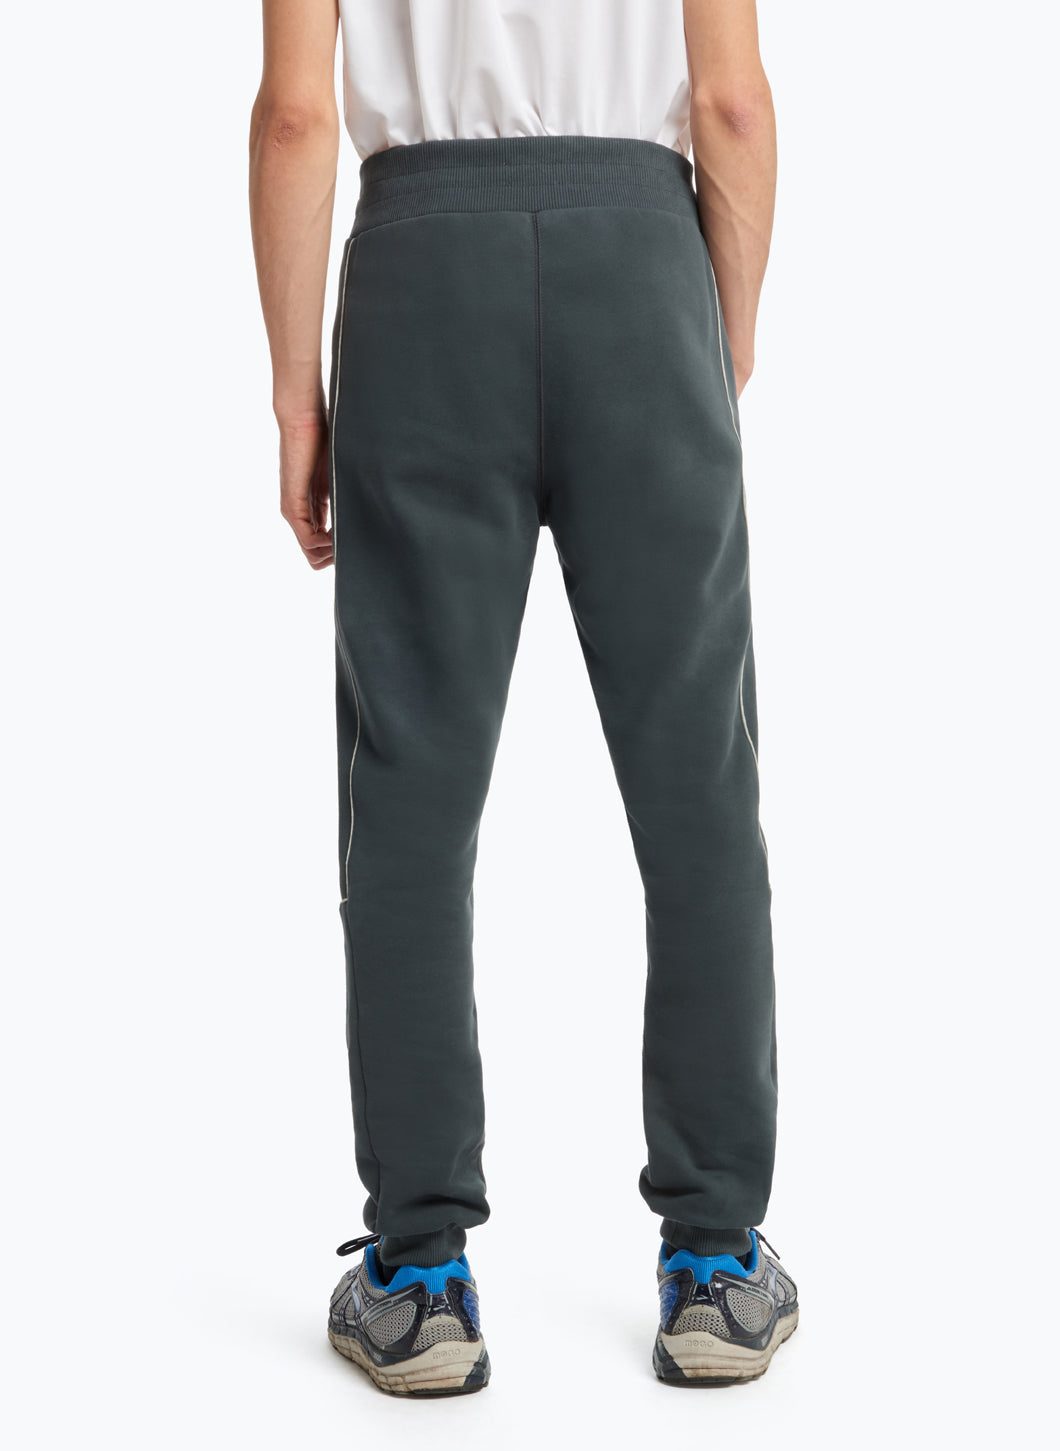 Jogging Pants with Side Cuts in Petrol Blue Fleece with White Trim